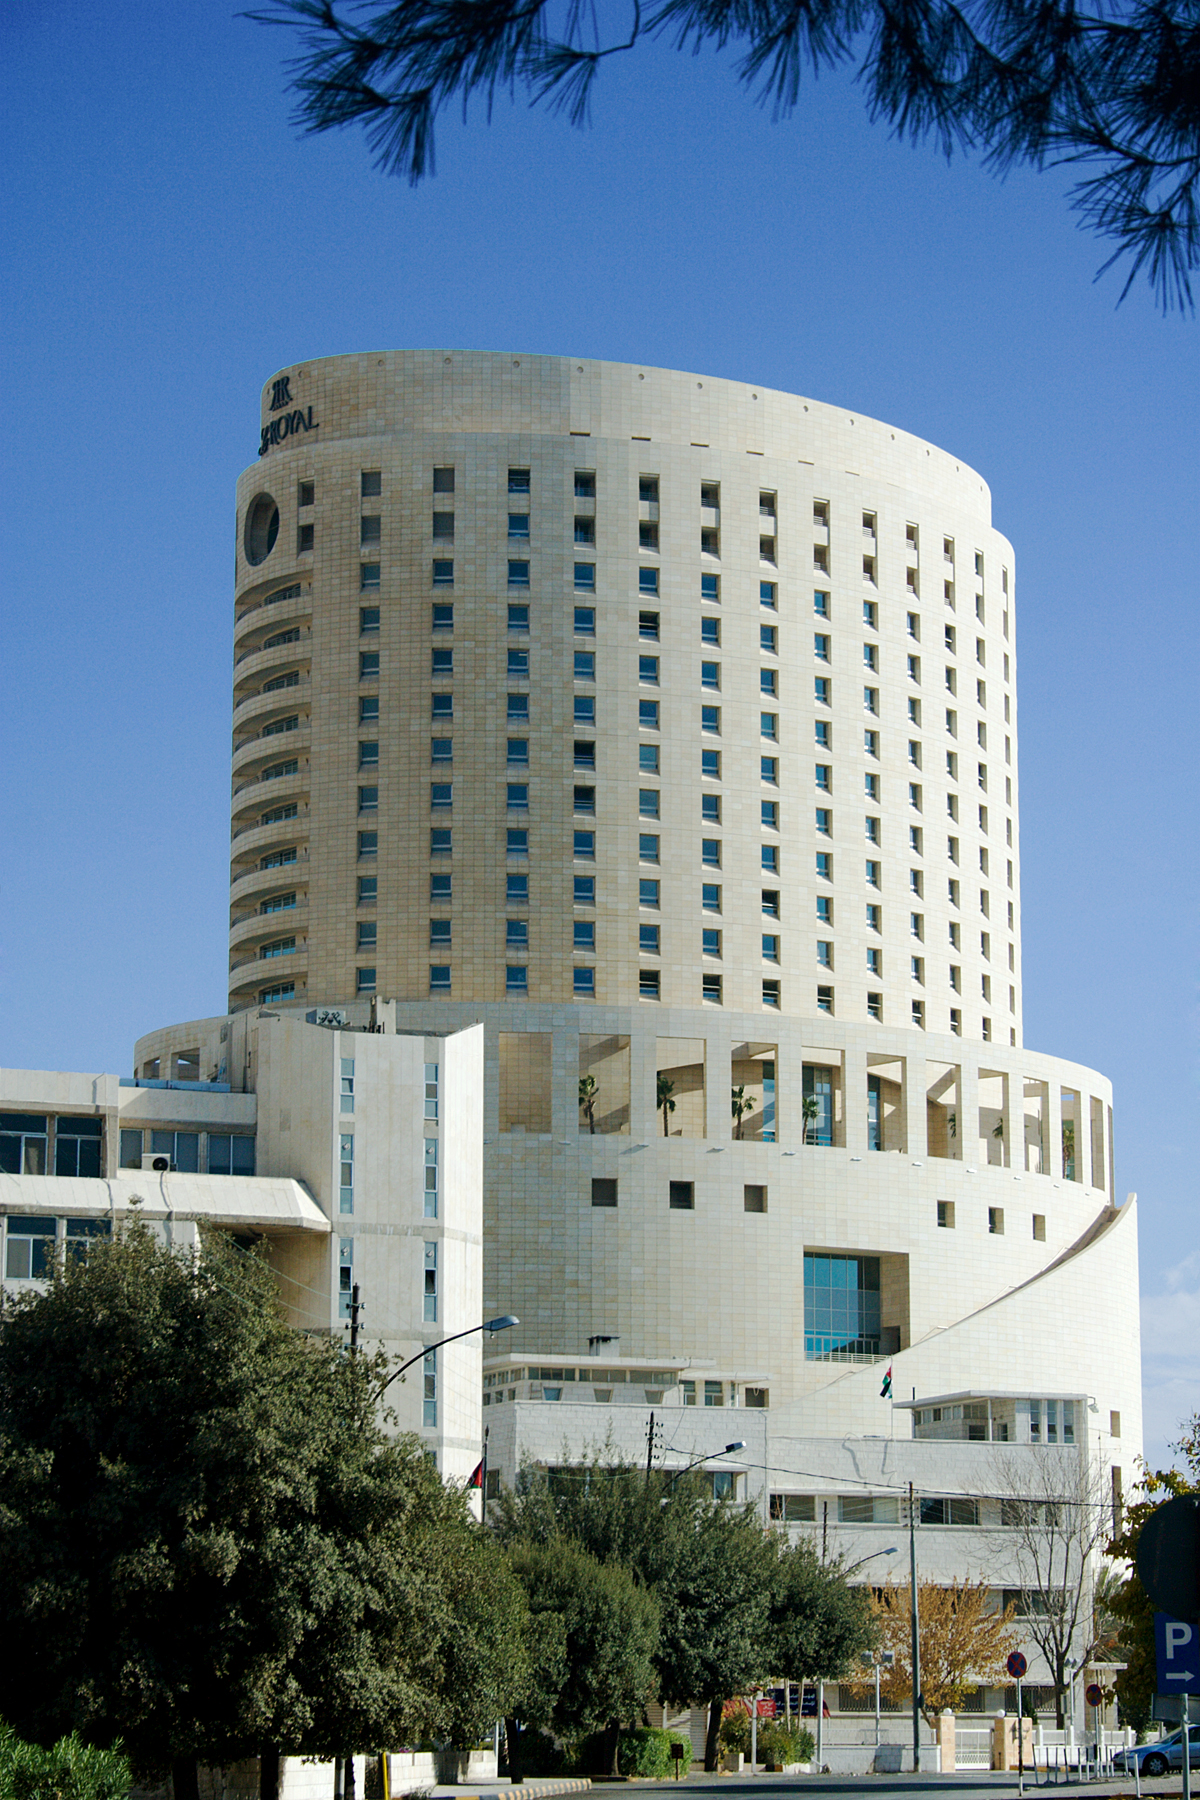 Le Royal Hotel Amman Wikipedia